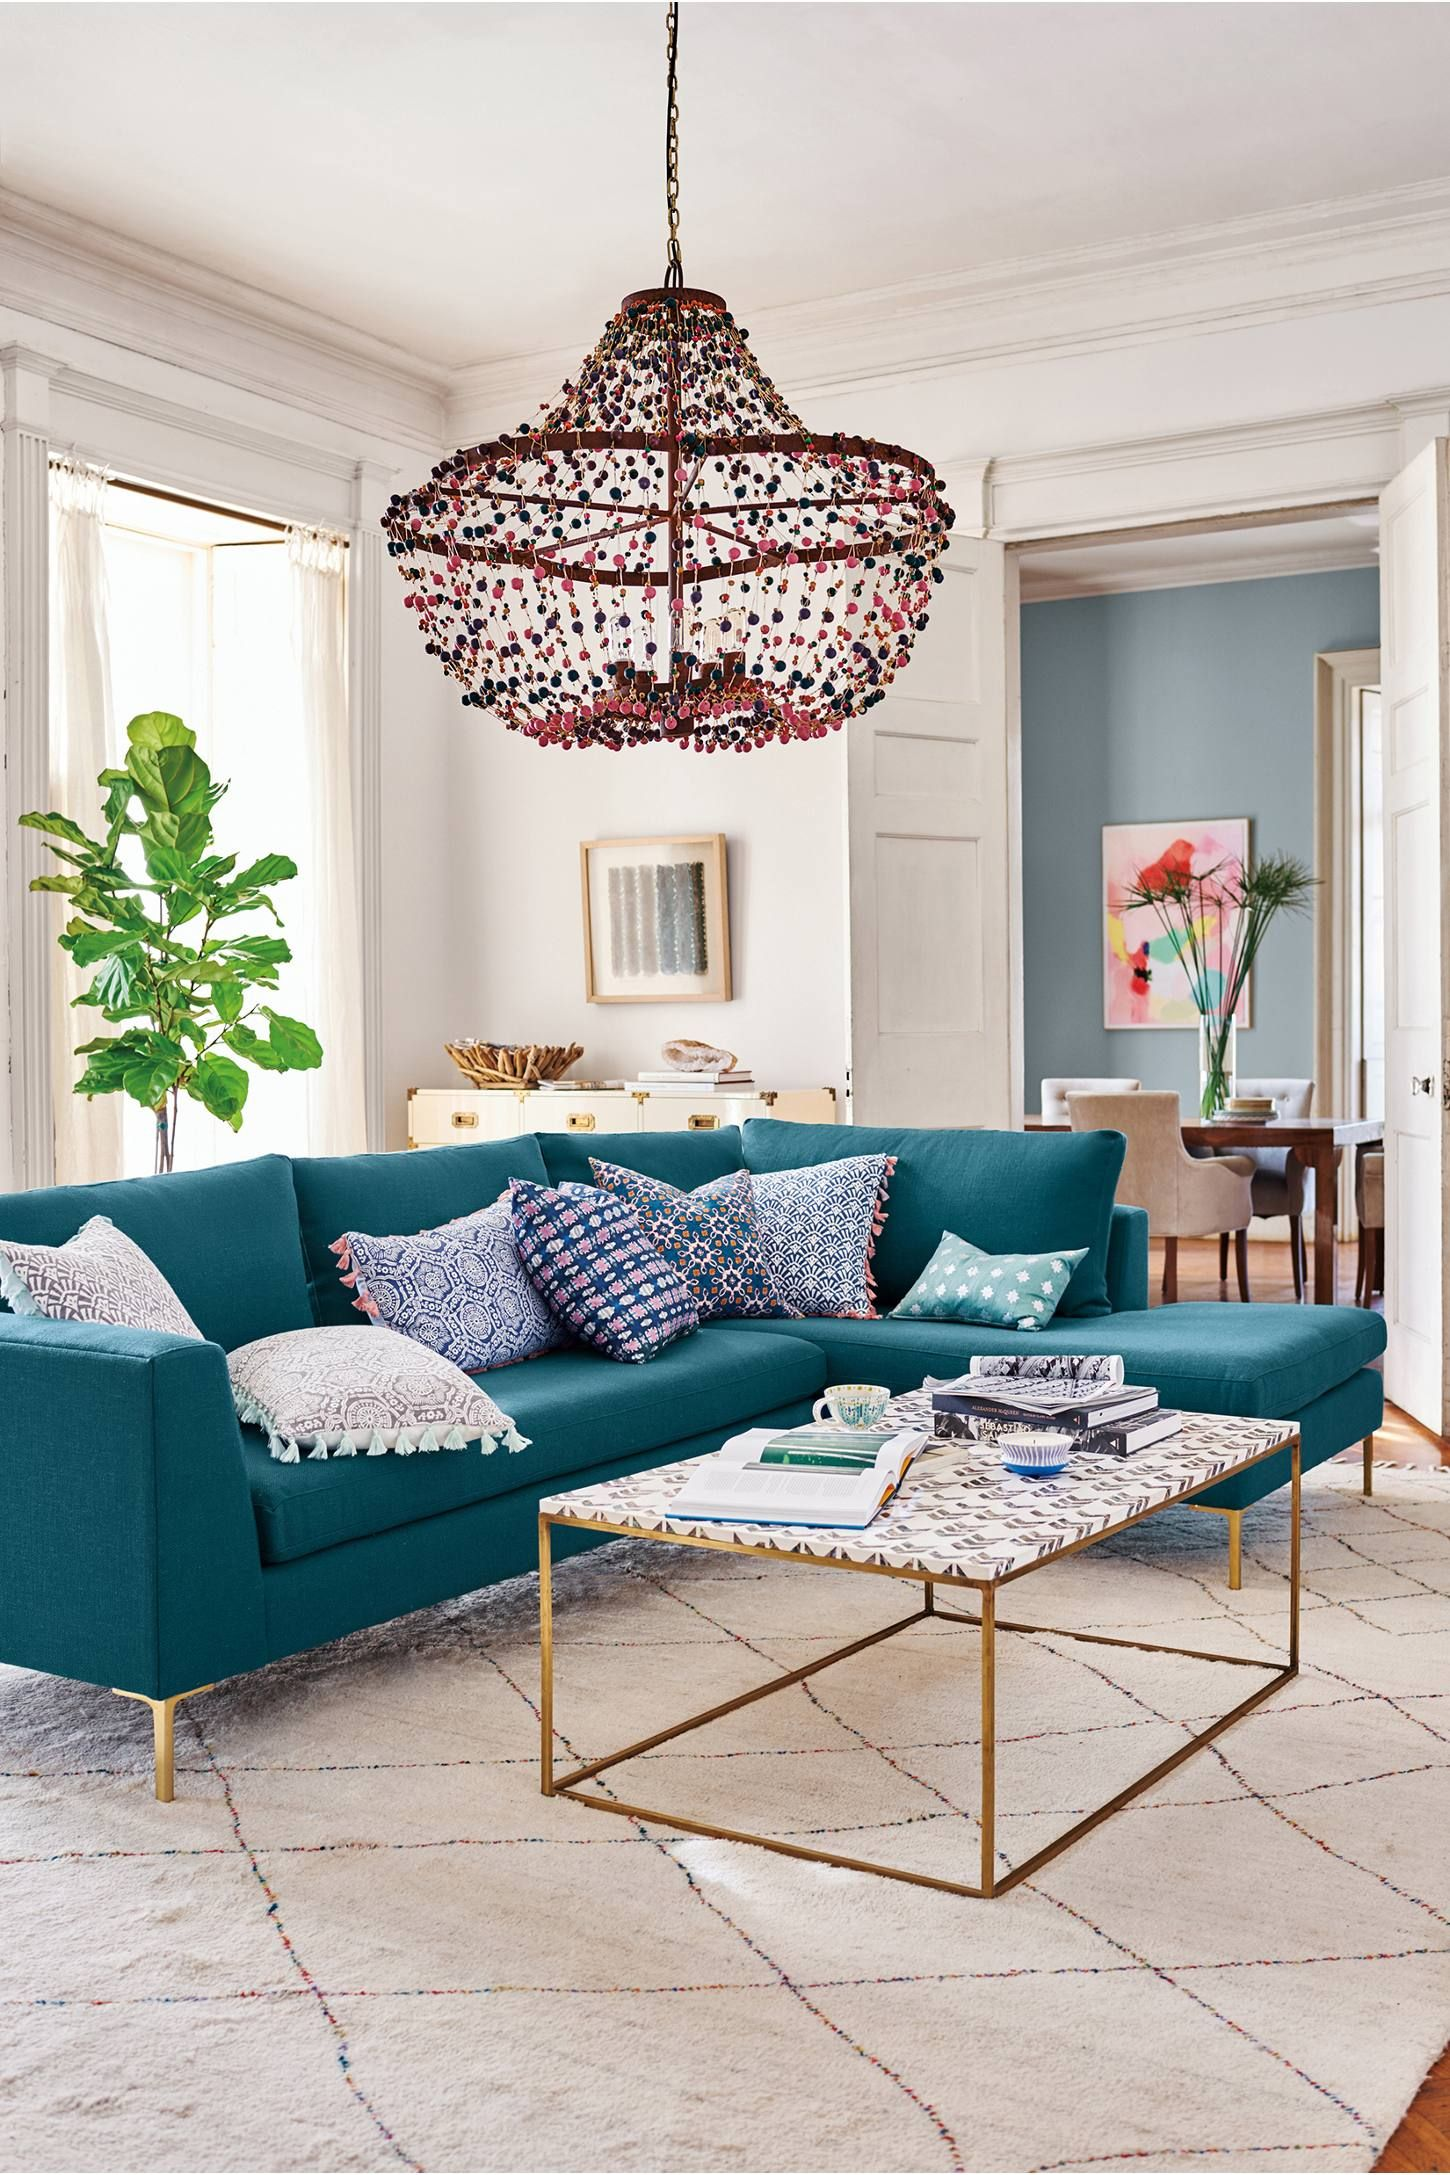 anthropologie living room. Let s talk about how Anthropologie is simply killing it with their new  House and Home collection The Inspired Flipping Living rooms